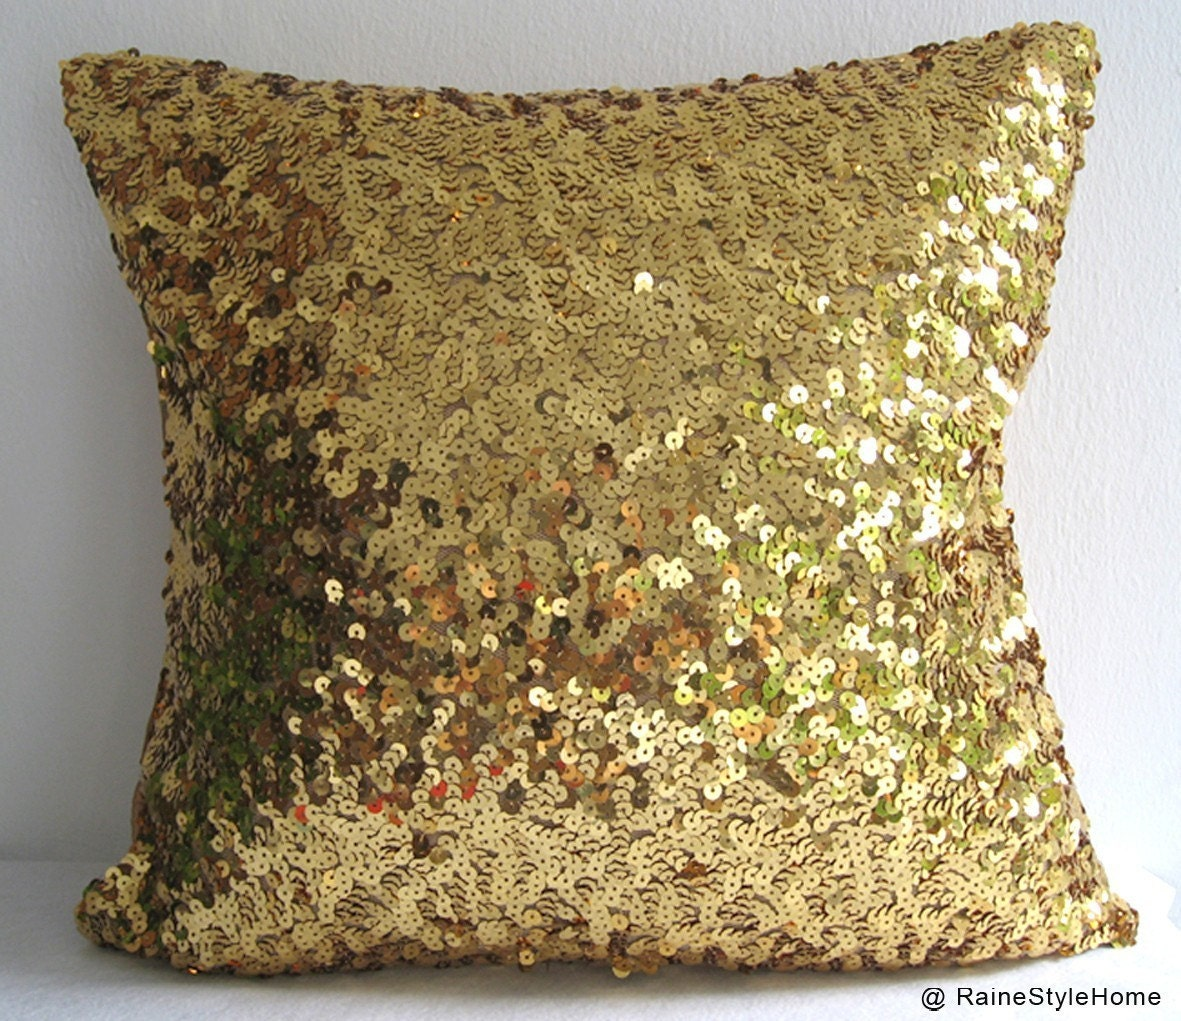 Starry Night. Luxury Glamour. Gold Sequins Embellished Pillow